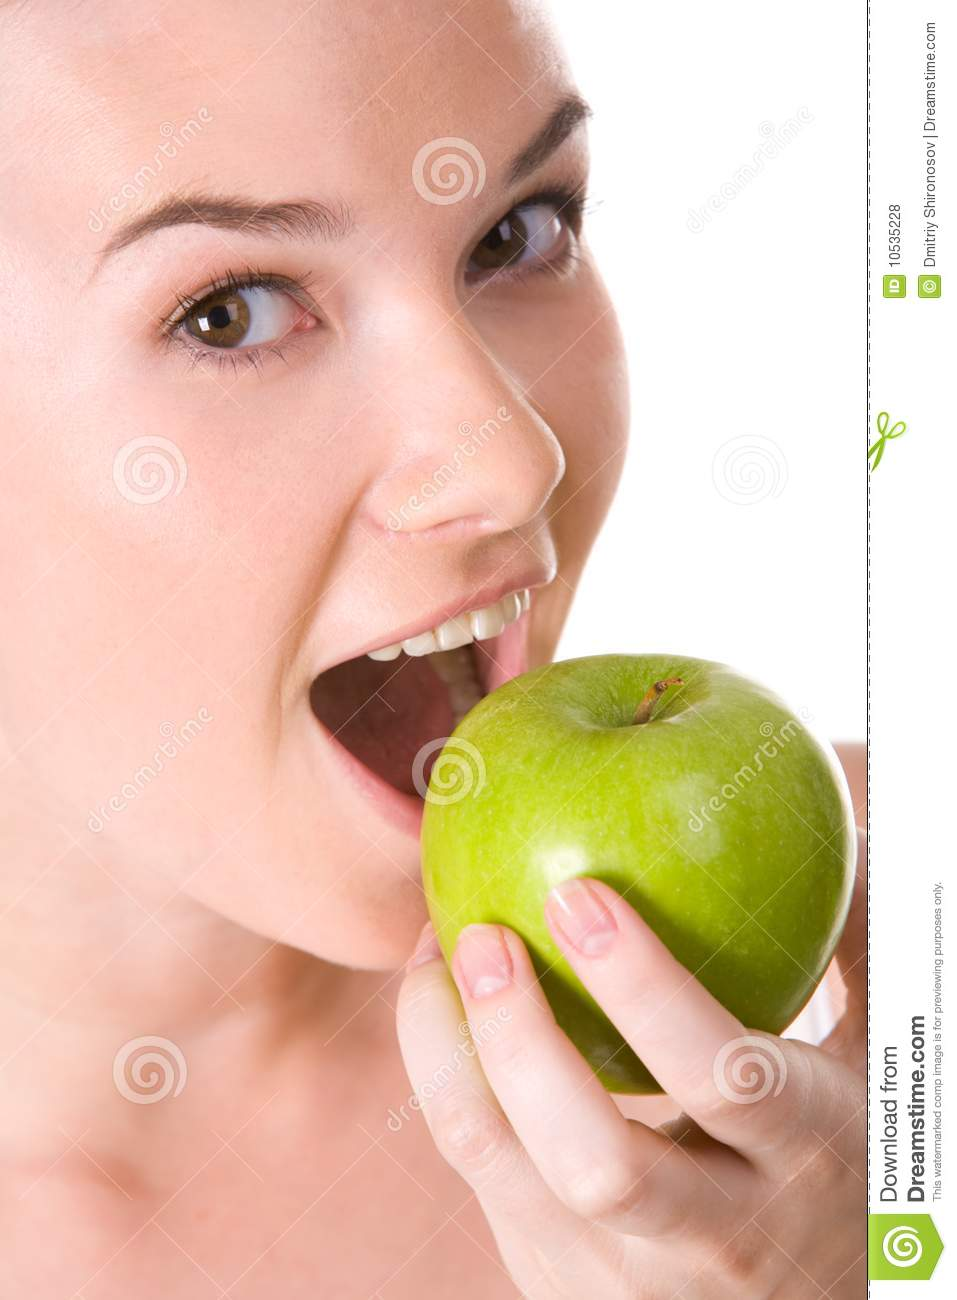 Eatting Apple | why an apple a day keeps the doctor away